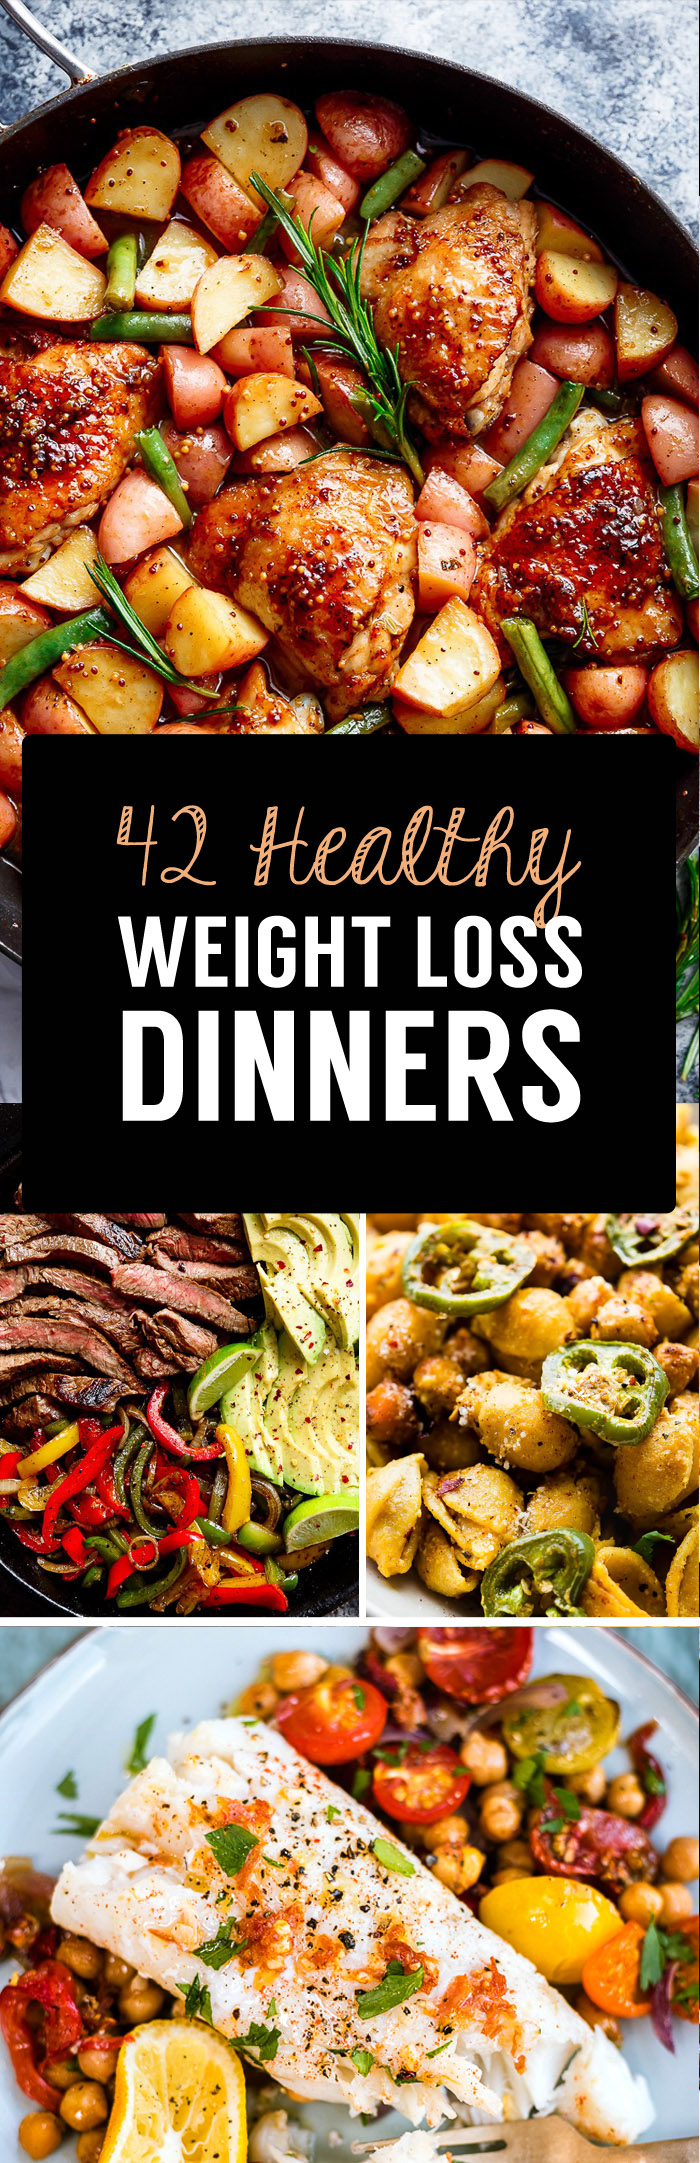 weight loss dinner recipes